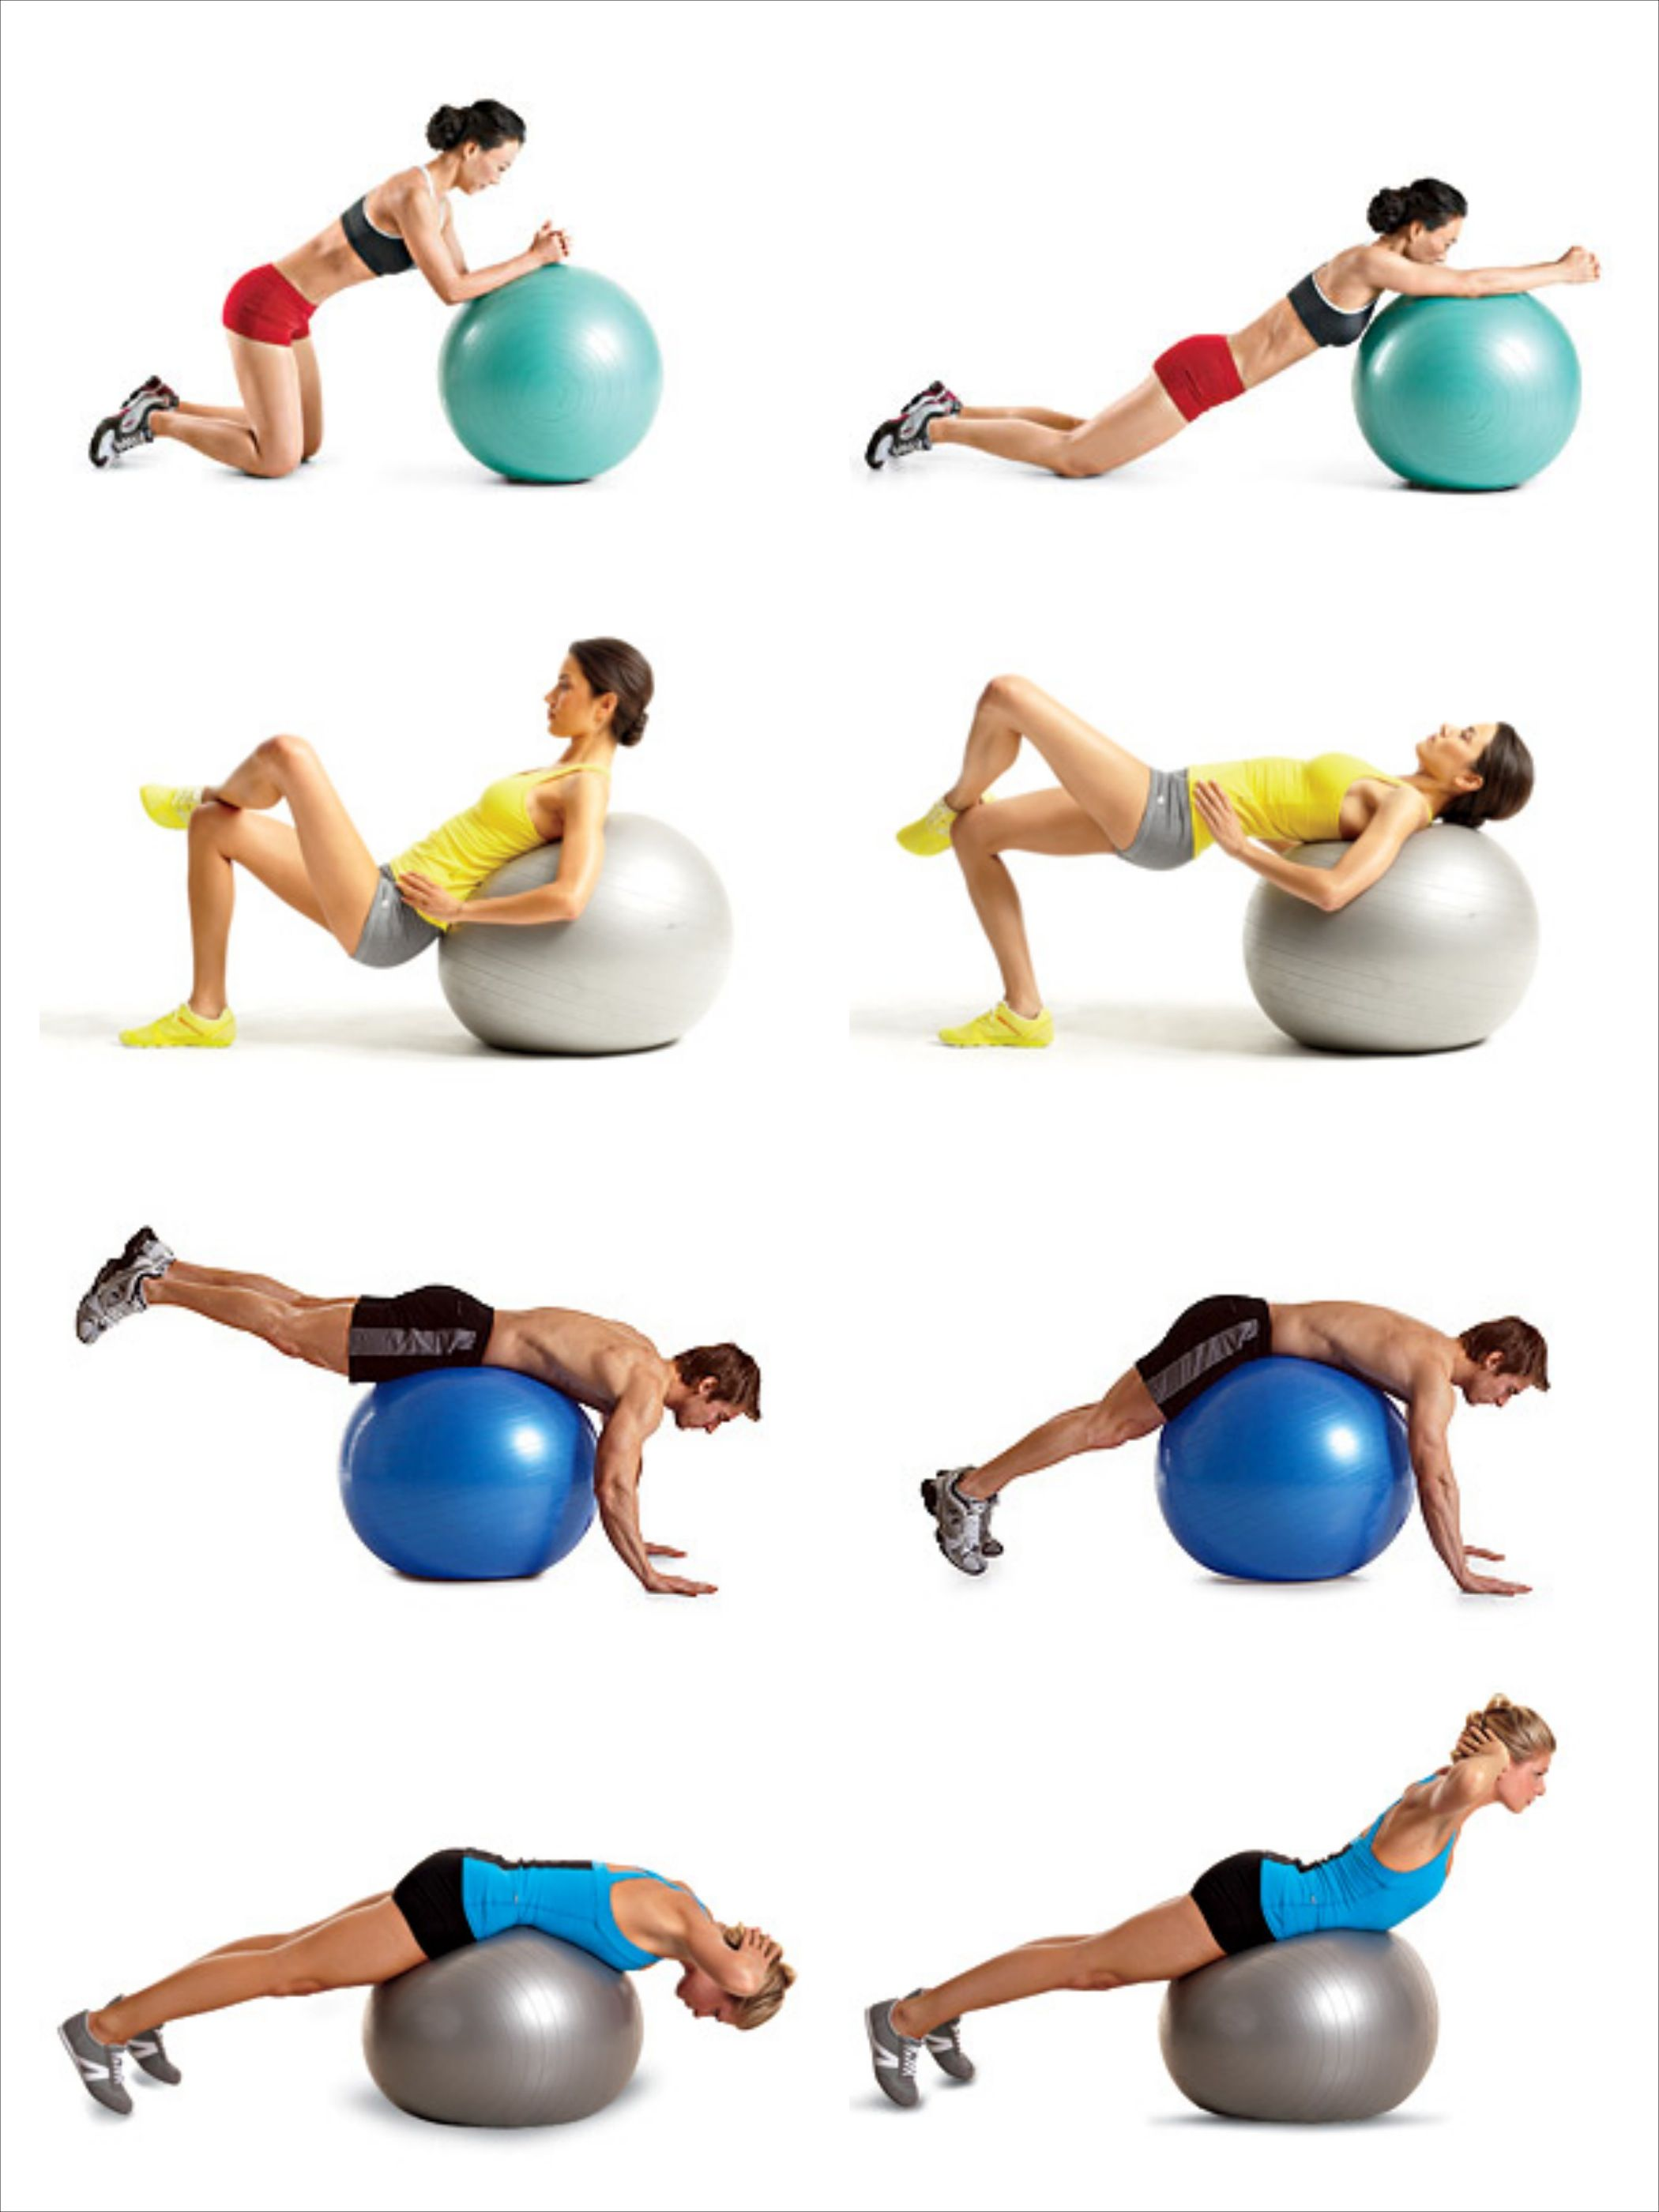 Swiss ball exercises Ejercicios Con Balon 8dea5b449a96